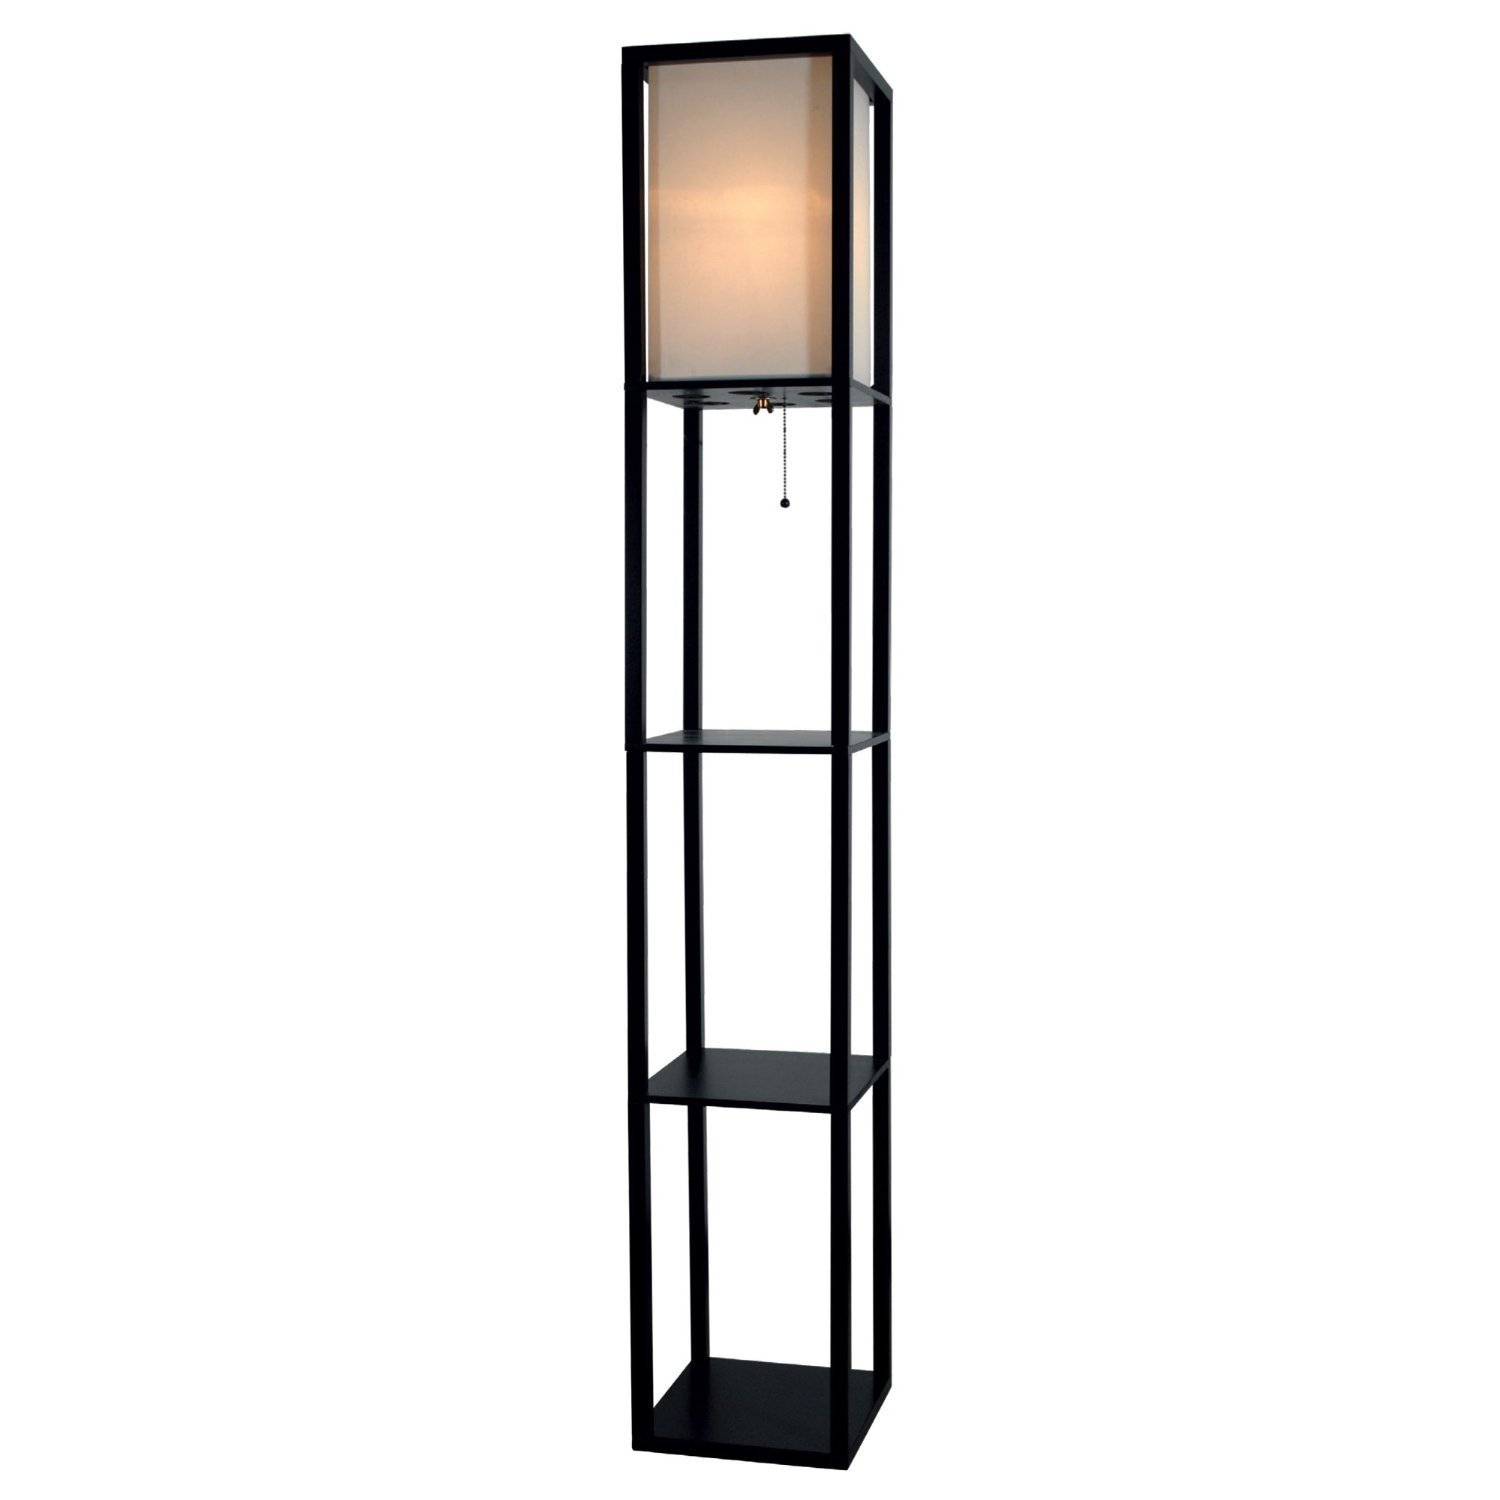 Total fab modern and contemporary floor lamps with shelves for Floor lamp with shelves